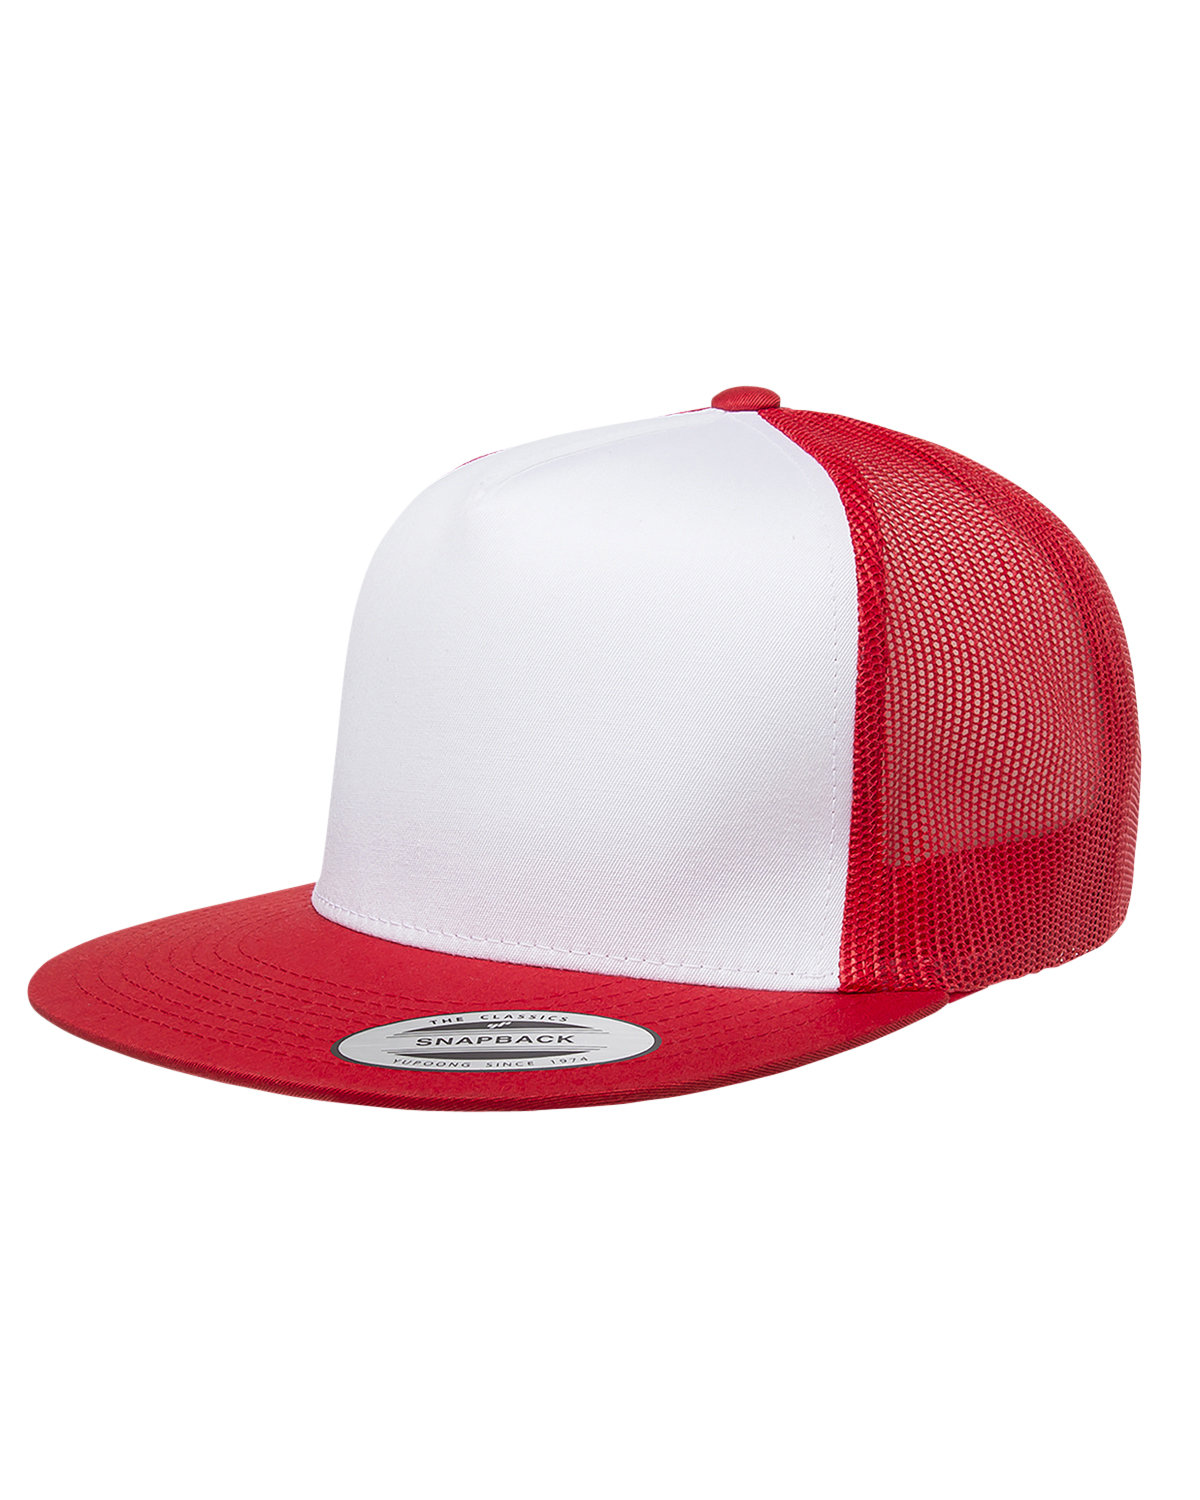 Yupoong Adult Classic Trucker with White Front Panel Cap RED/ WHT/ RED